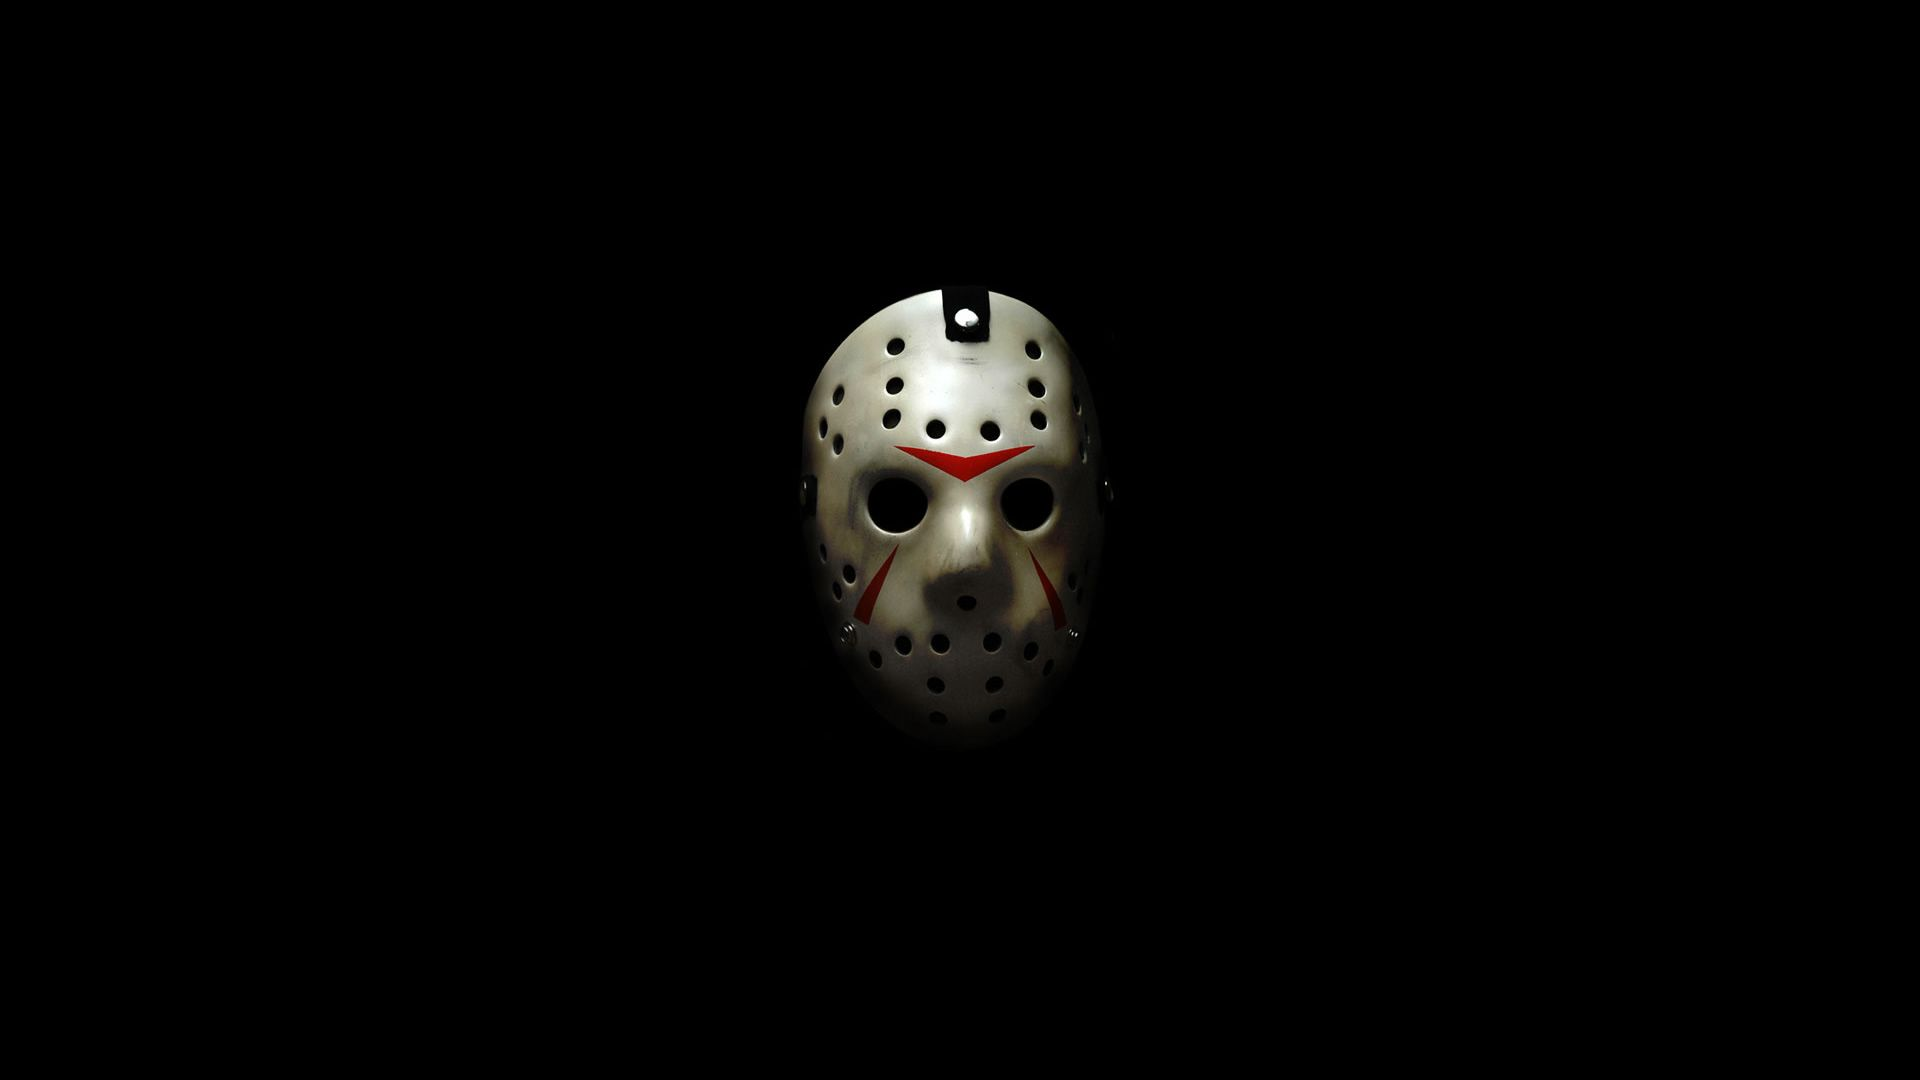 Friday The 13th Mask Hd Wallpaper Friday The 13th Full Hd